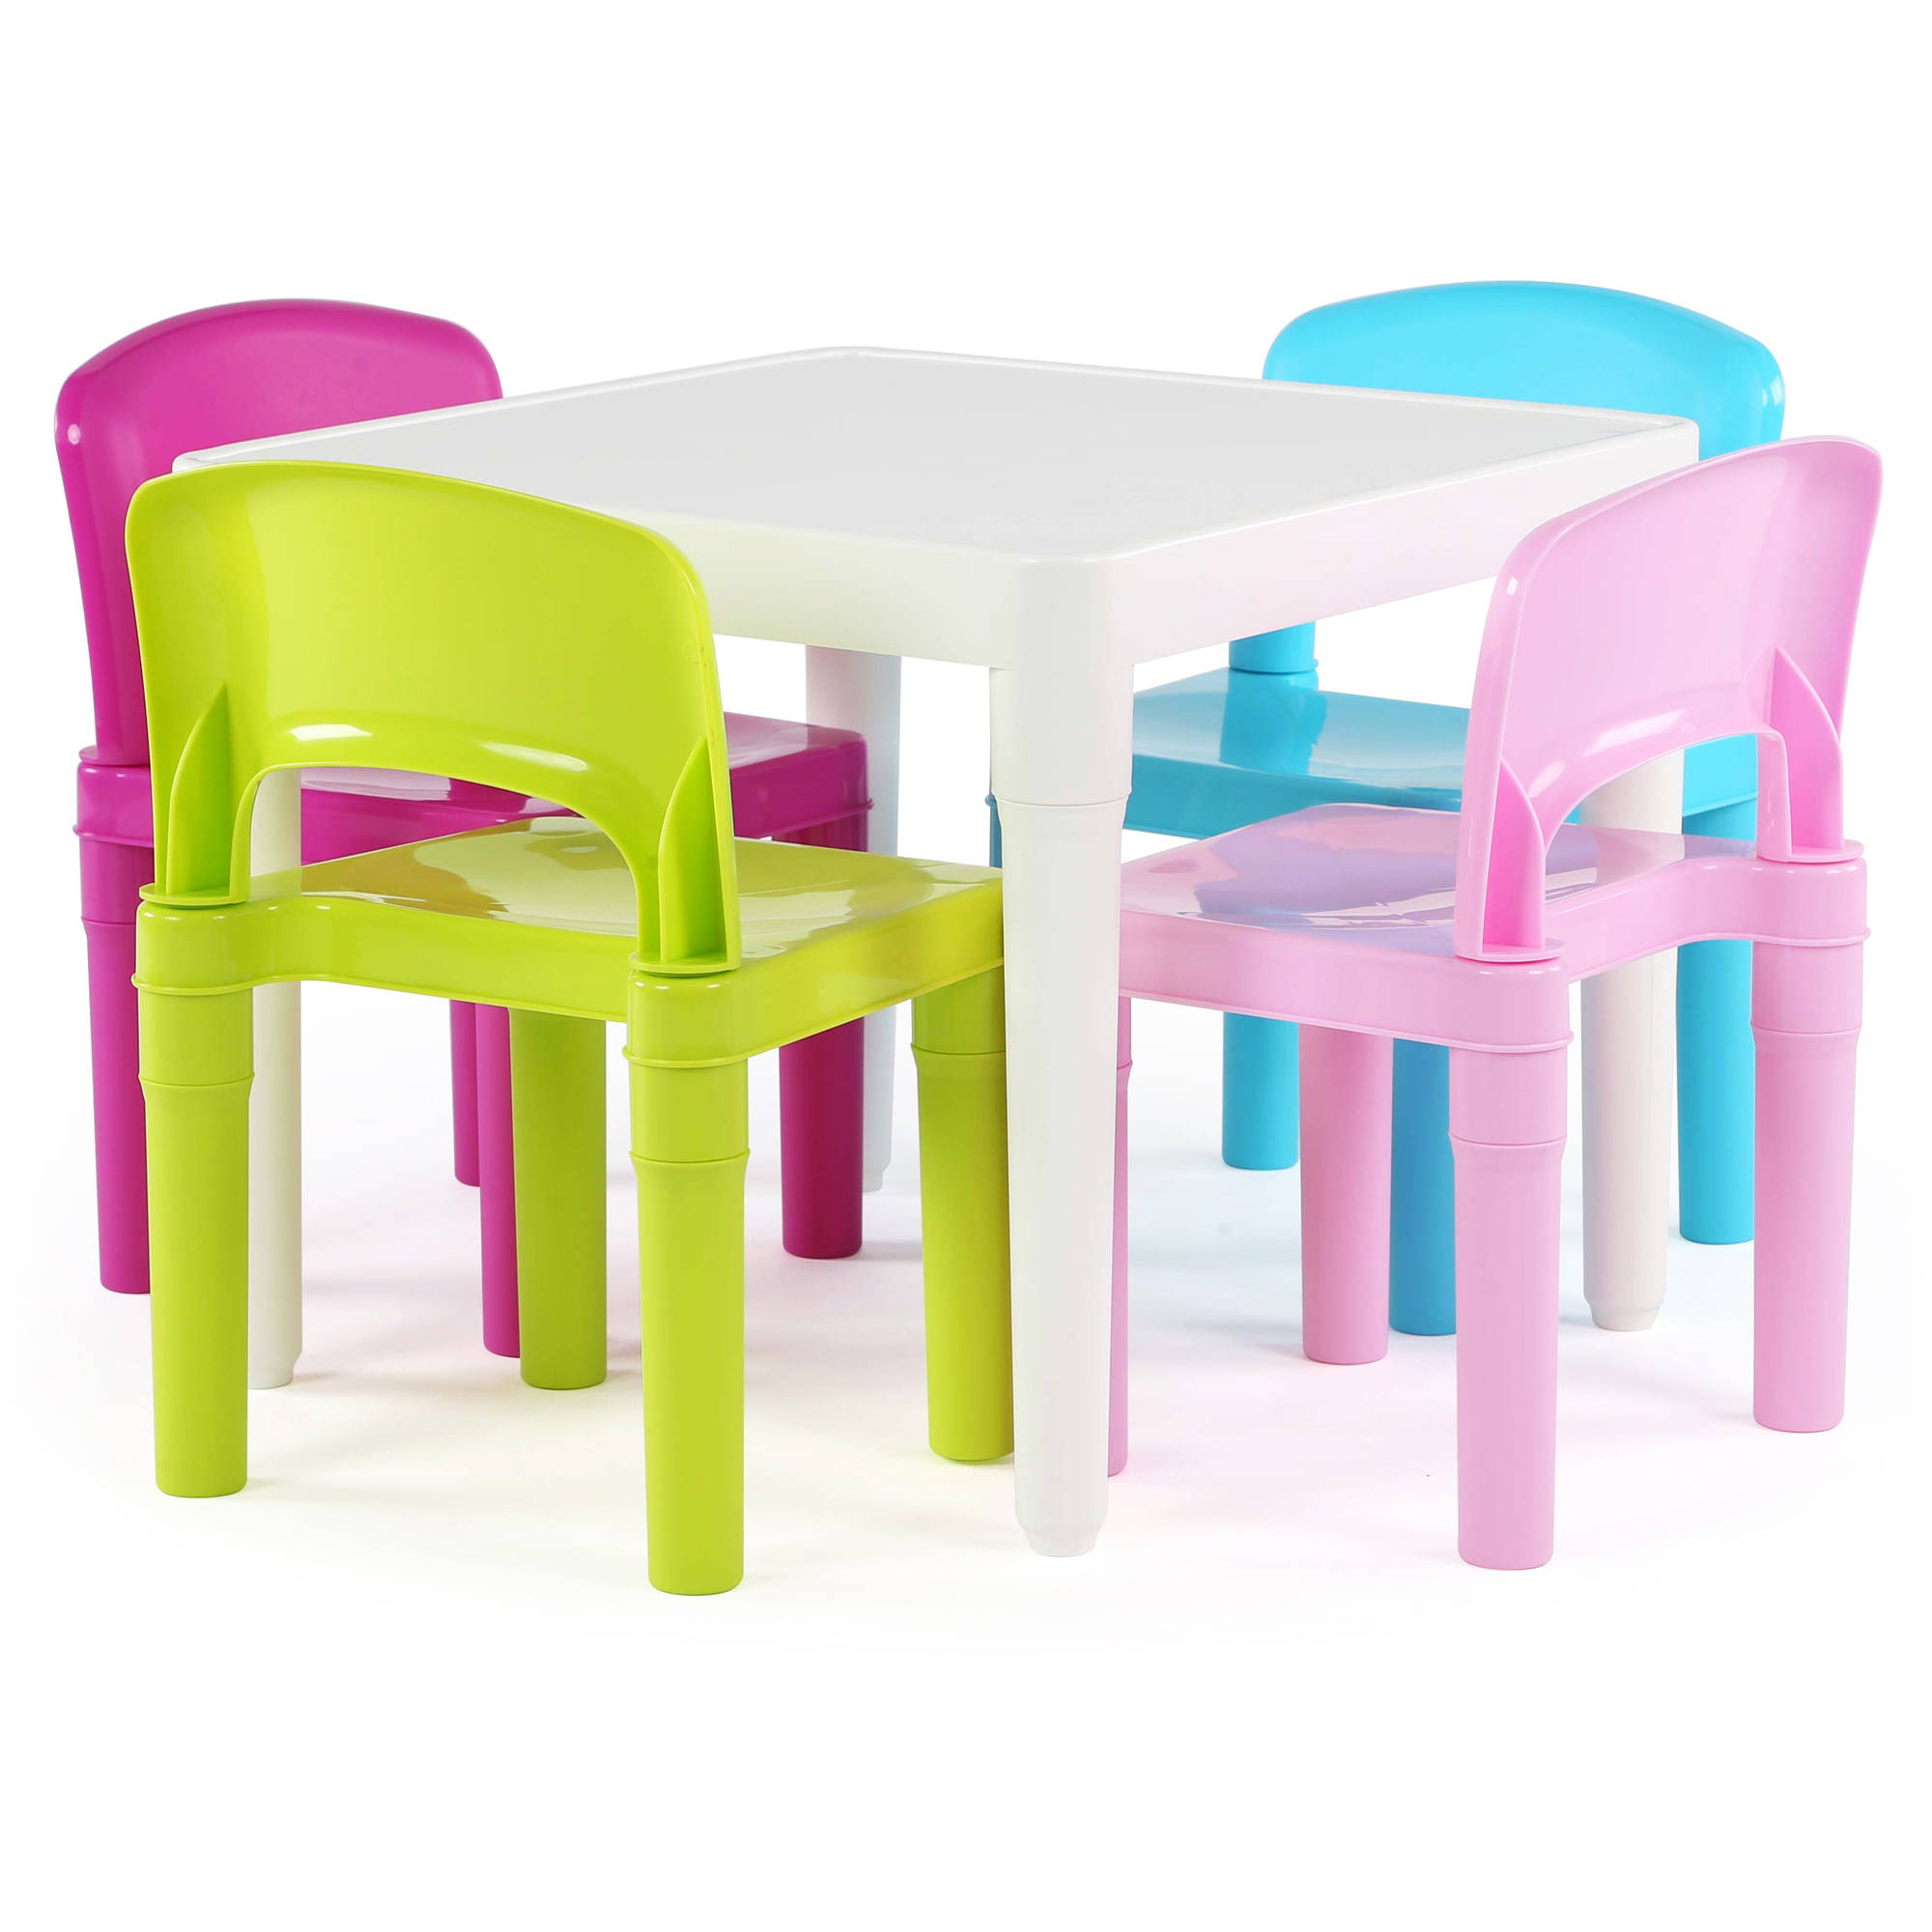 Tot Tutors Kids Plastic Table And 4 Chairs Set, Bright Colors   Walmart.com